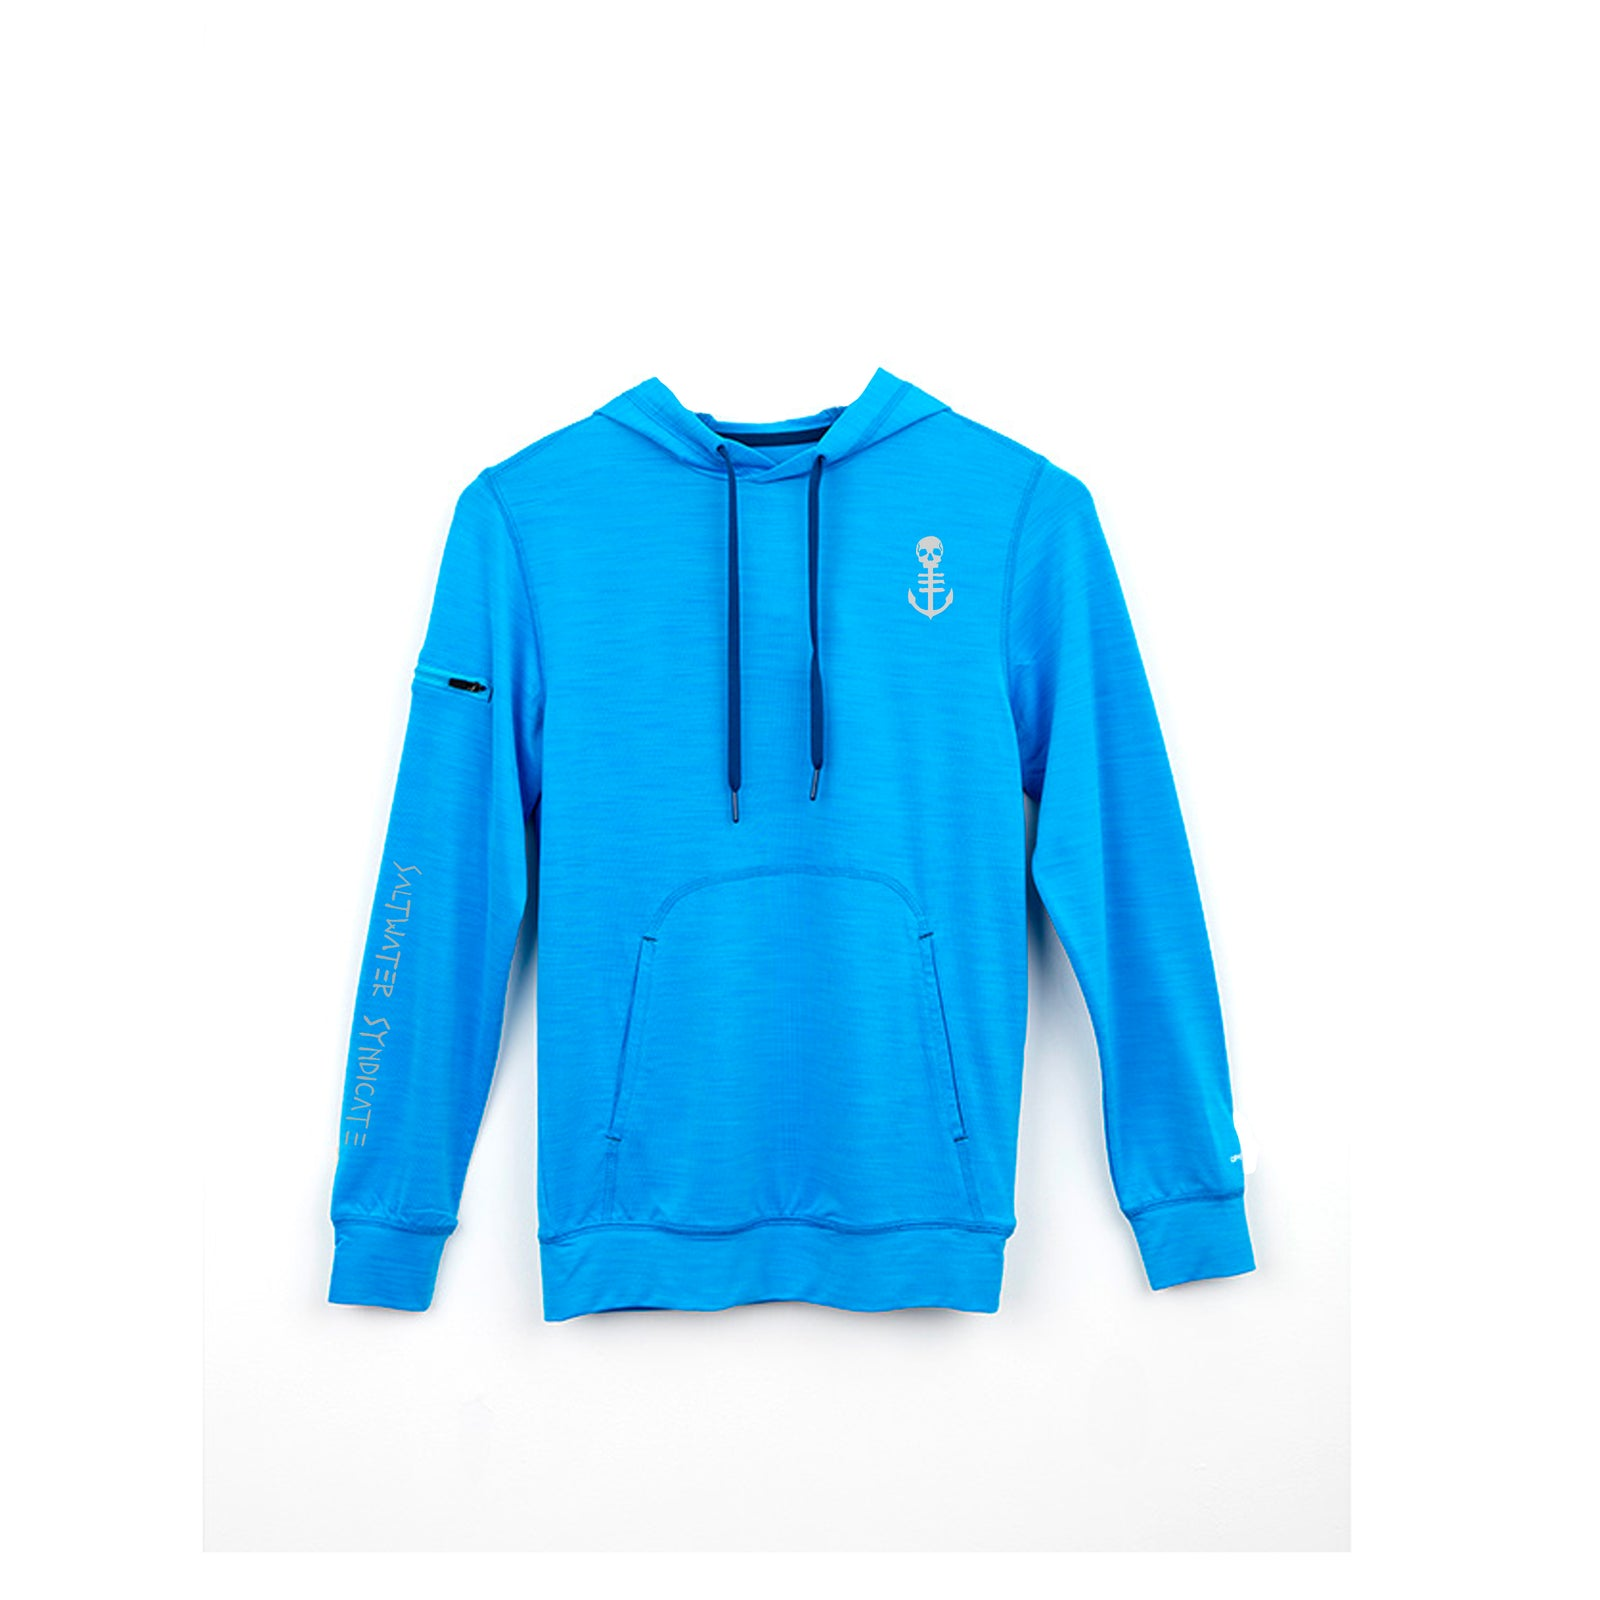 Synd-tek Ultra Performance Hoodie - Blue